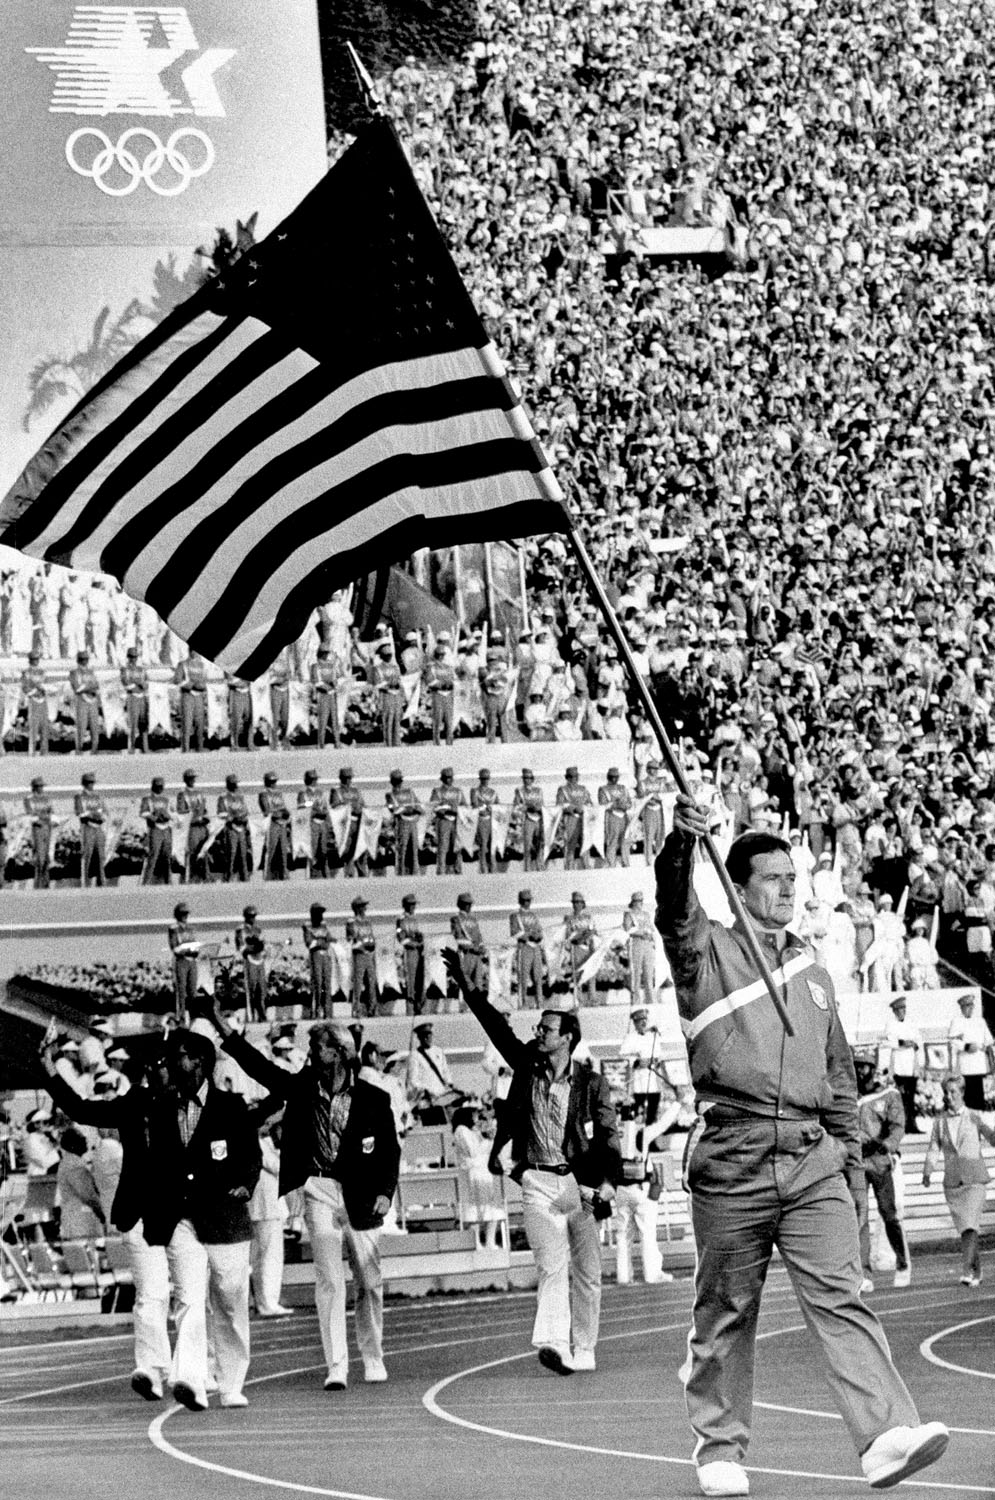 Ed Burke, a hammer thrower, bears the flag of the United States, as the team marches into the Coliseum, during the opening ceremonies of the 23rd Summer Olympics in Los Angeles, July 28, 1984.